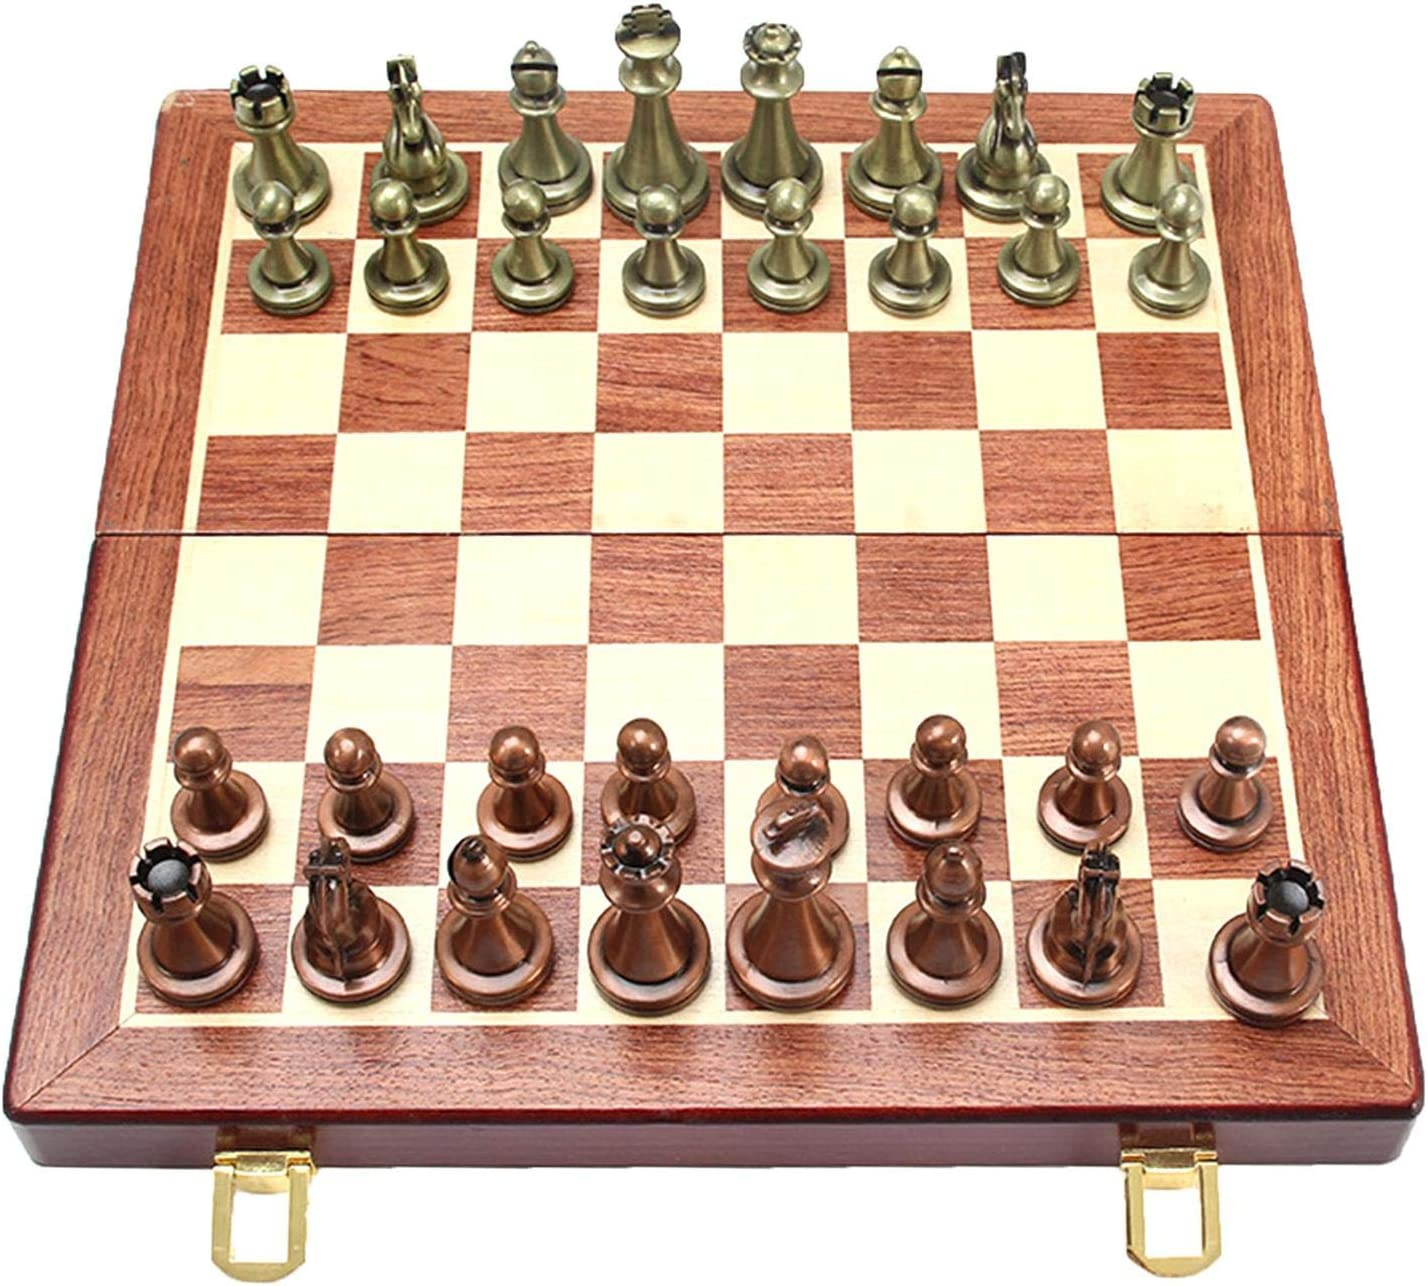 Kindlyperson 3 in 1 Handmade Wooden Chess Set Folding Portable Chessboard Storage Backgammon Checkers Travel Board Game Chess Set for Kids Adults Outdoor Indoor